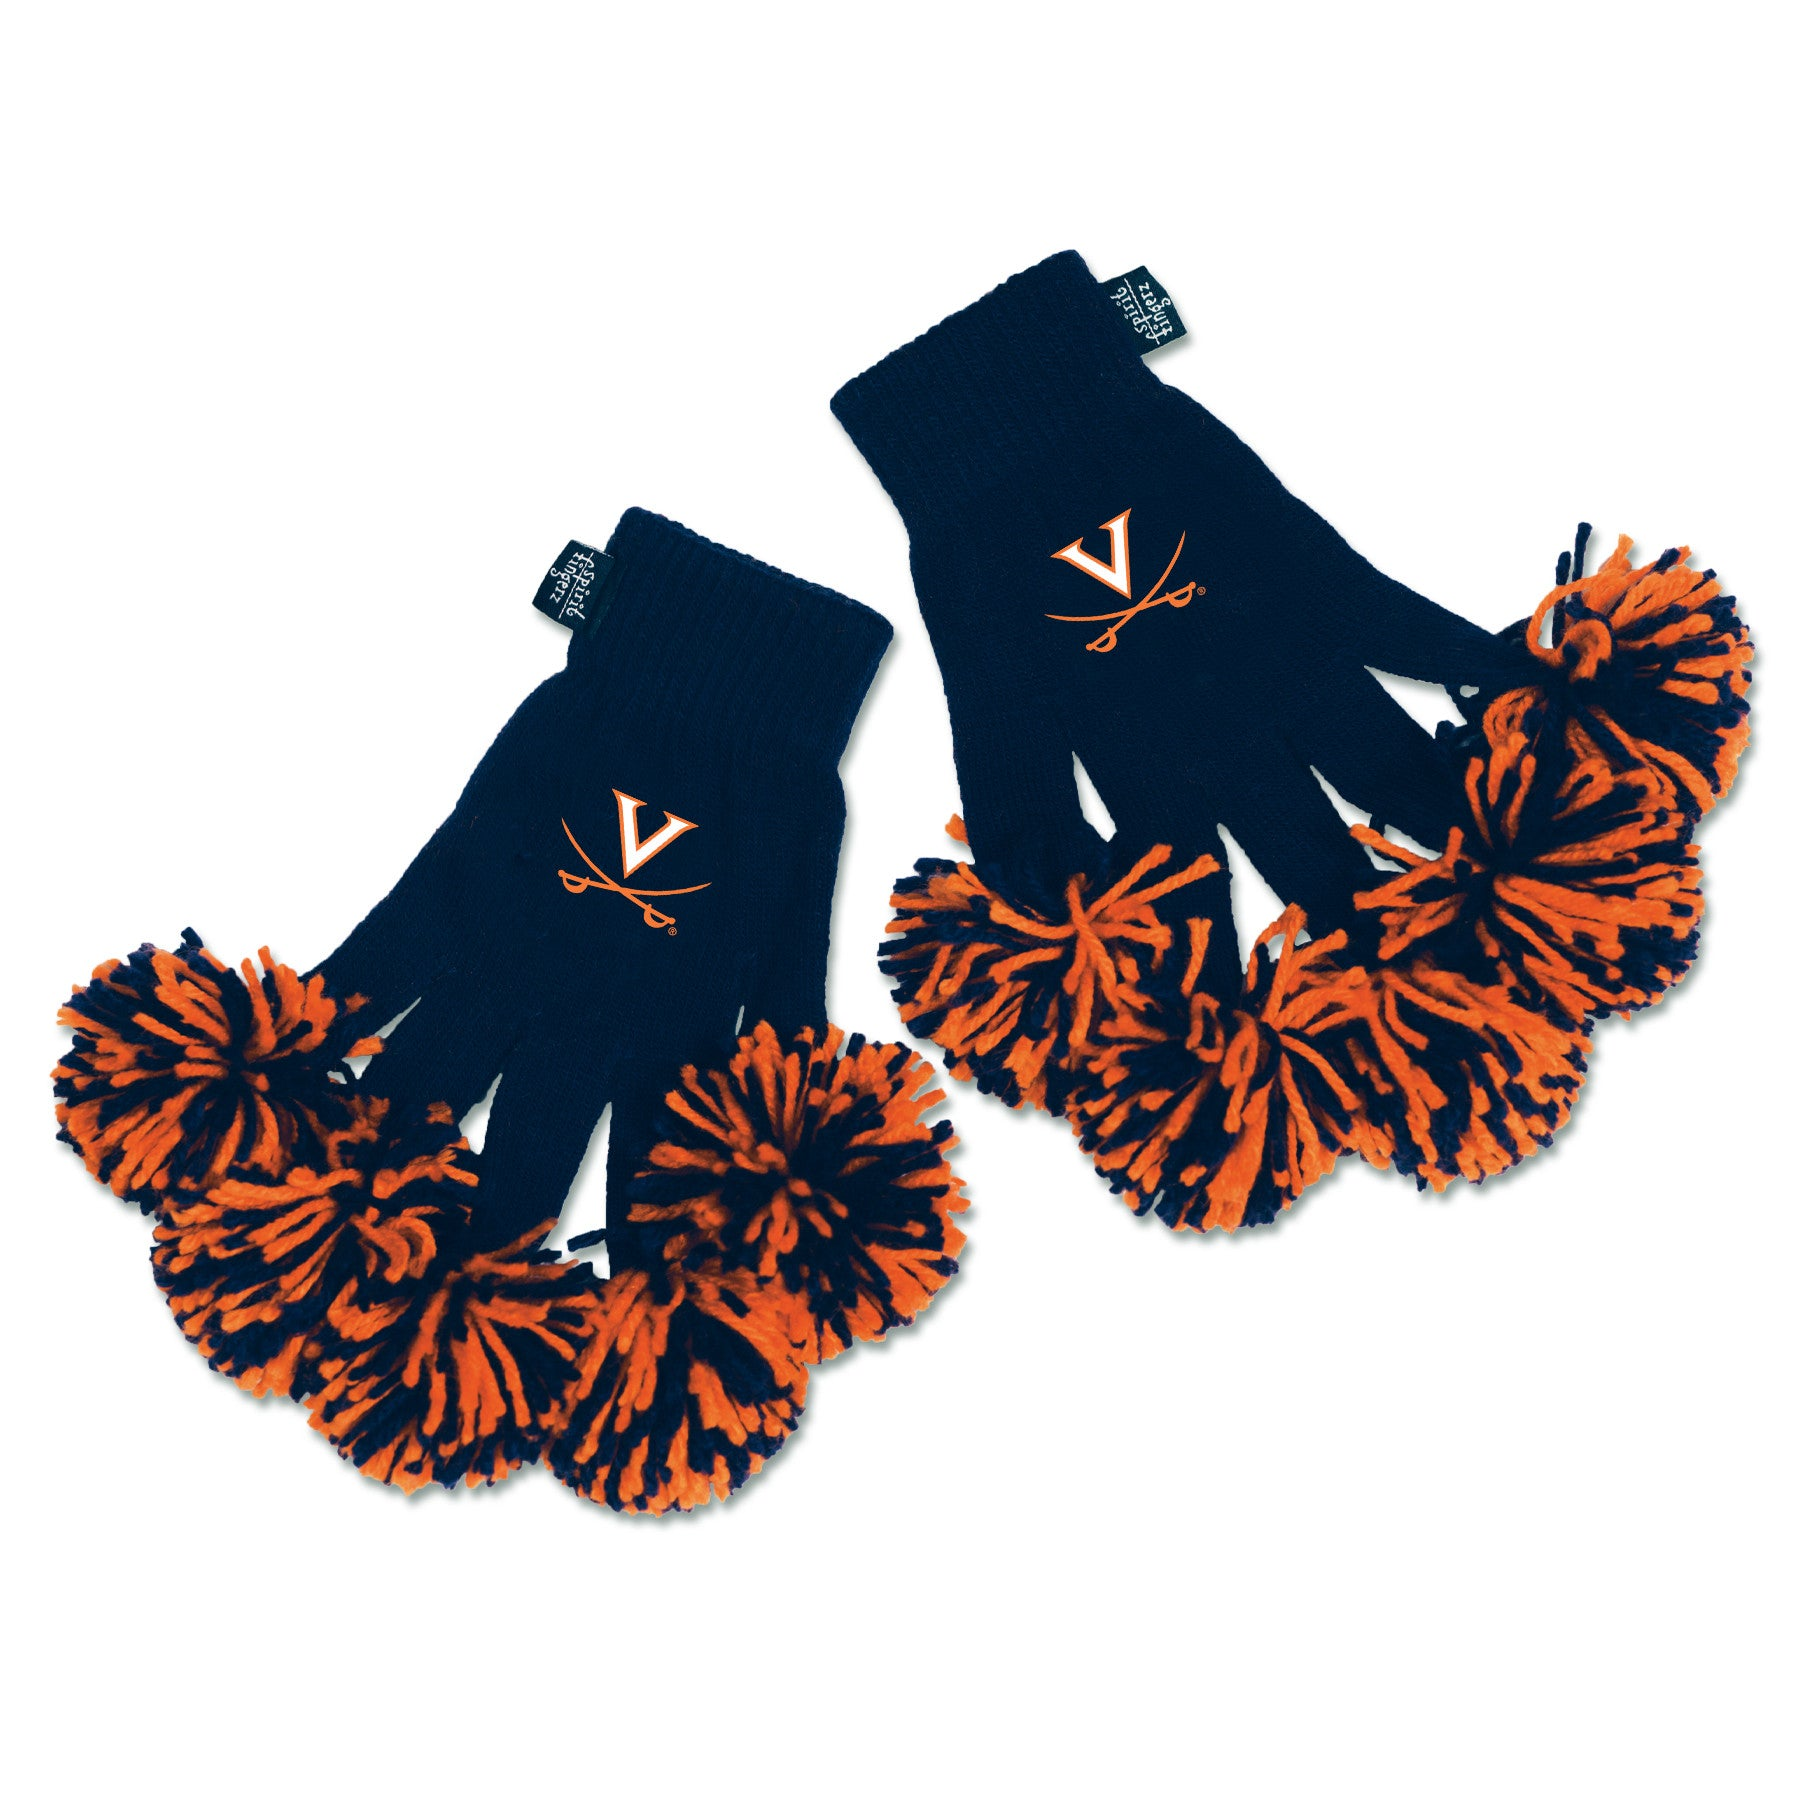 Virginia Cavaliers NCAA Spirit Fingerz Cheerleading Pom-Pom Gloves